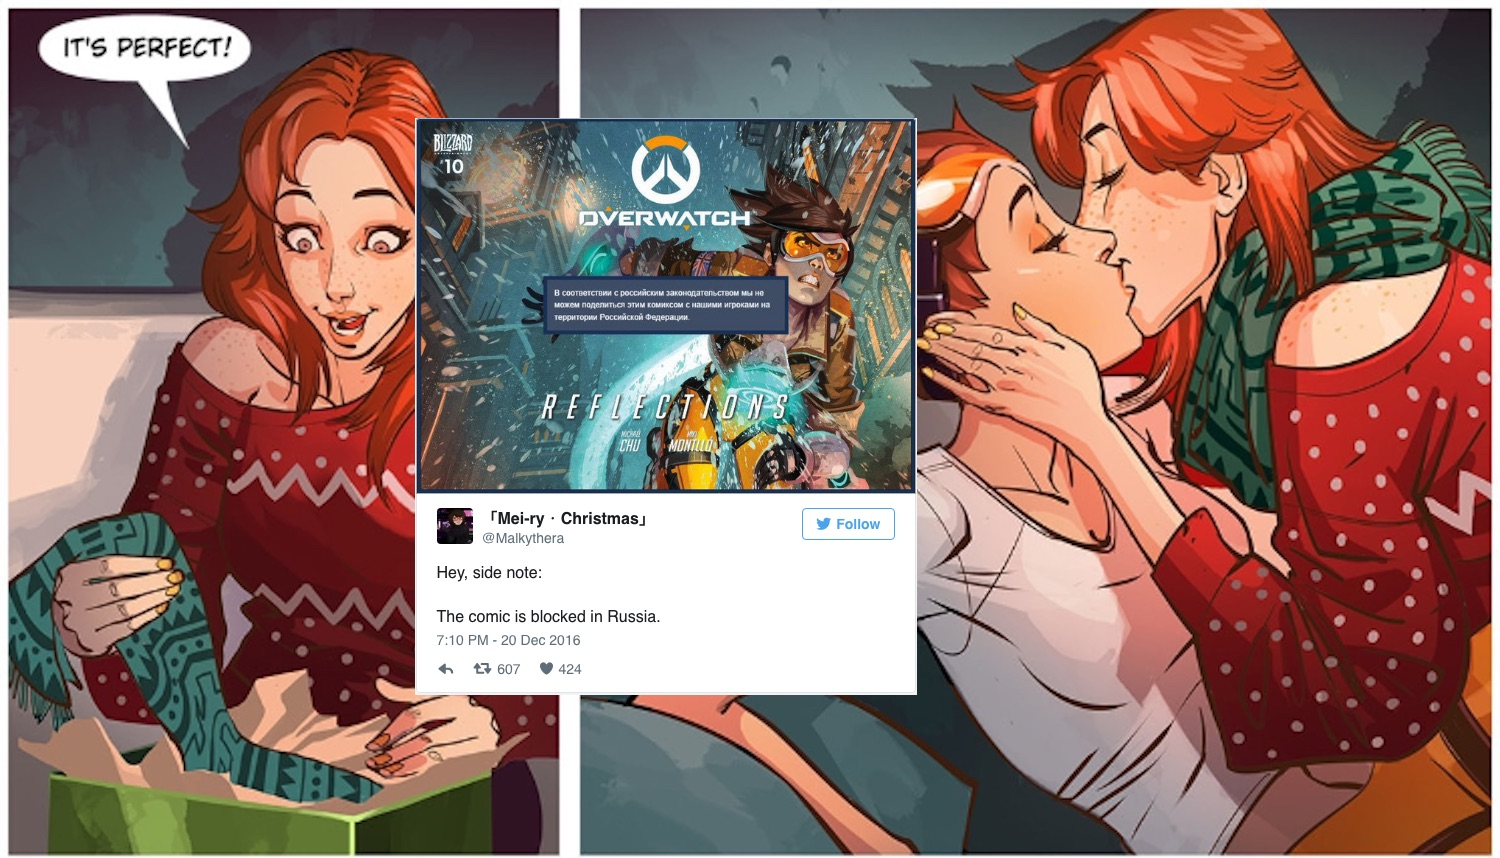 Reader Comments  C2 B7 Cute Overwatch Comic Featuring Lesbian Christmas Kiss Banned In Russia  C2 B7 Pinknews